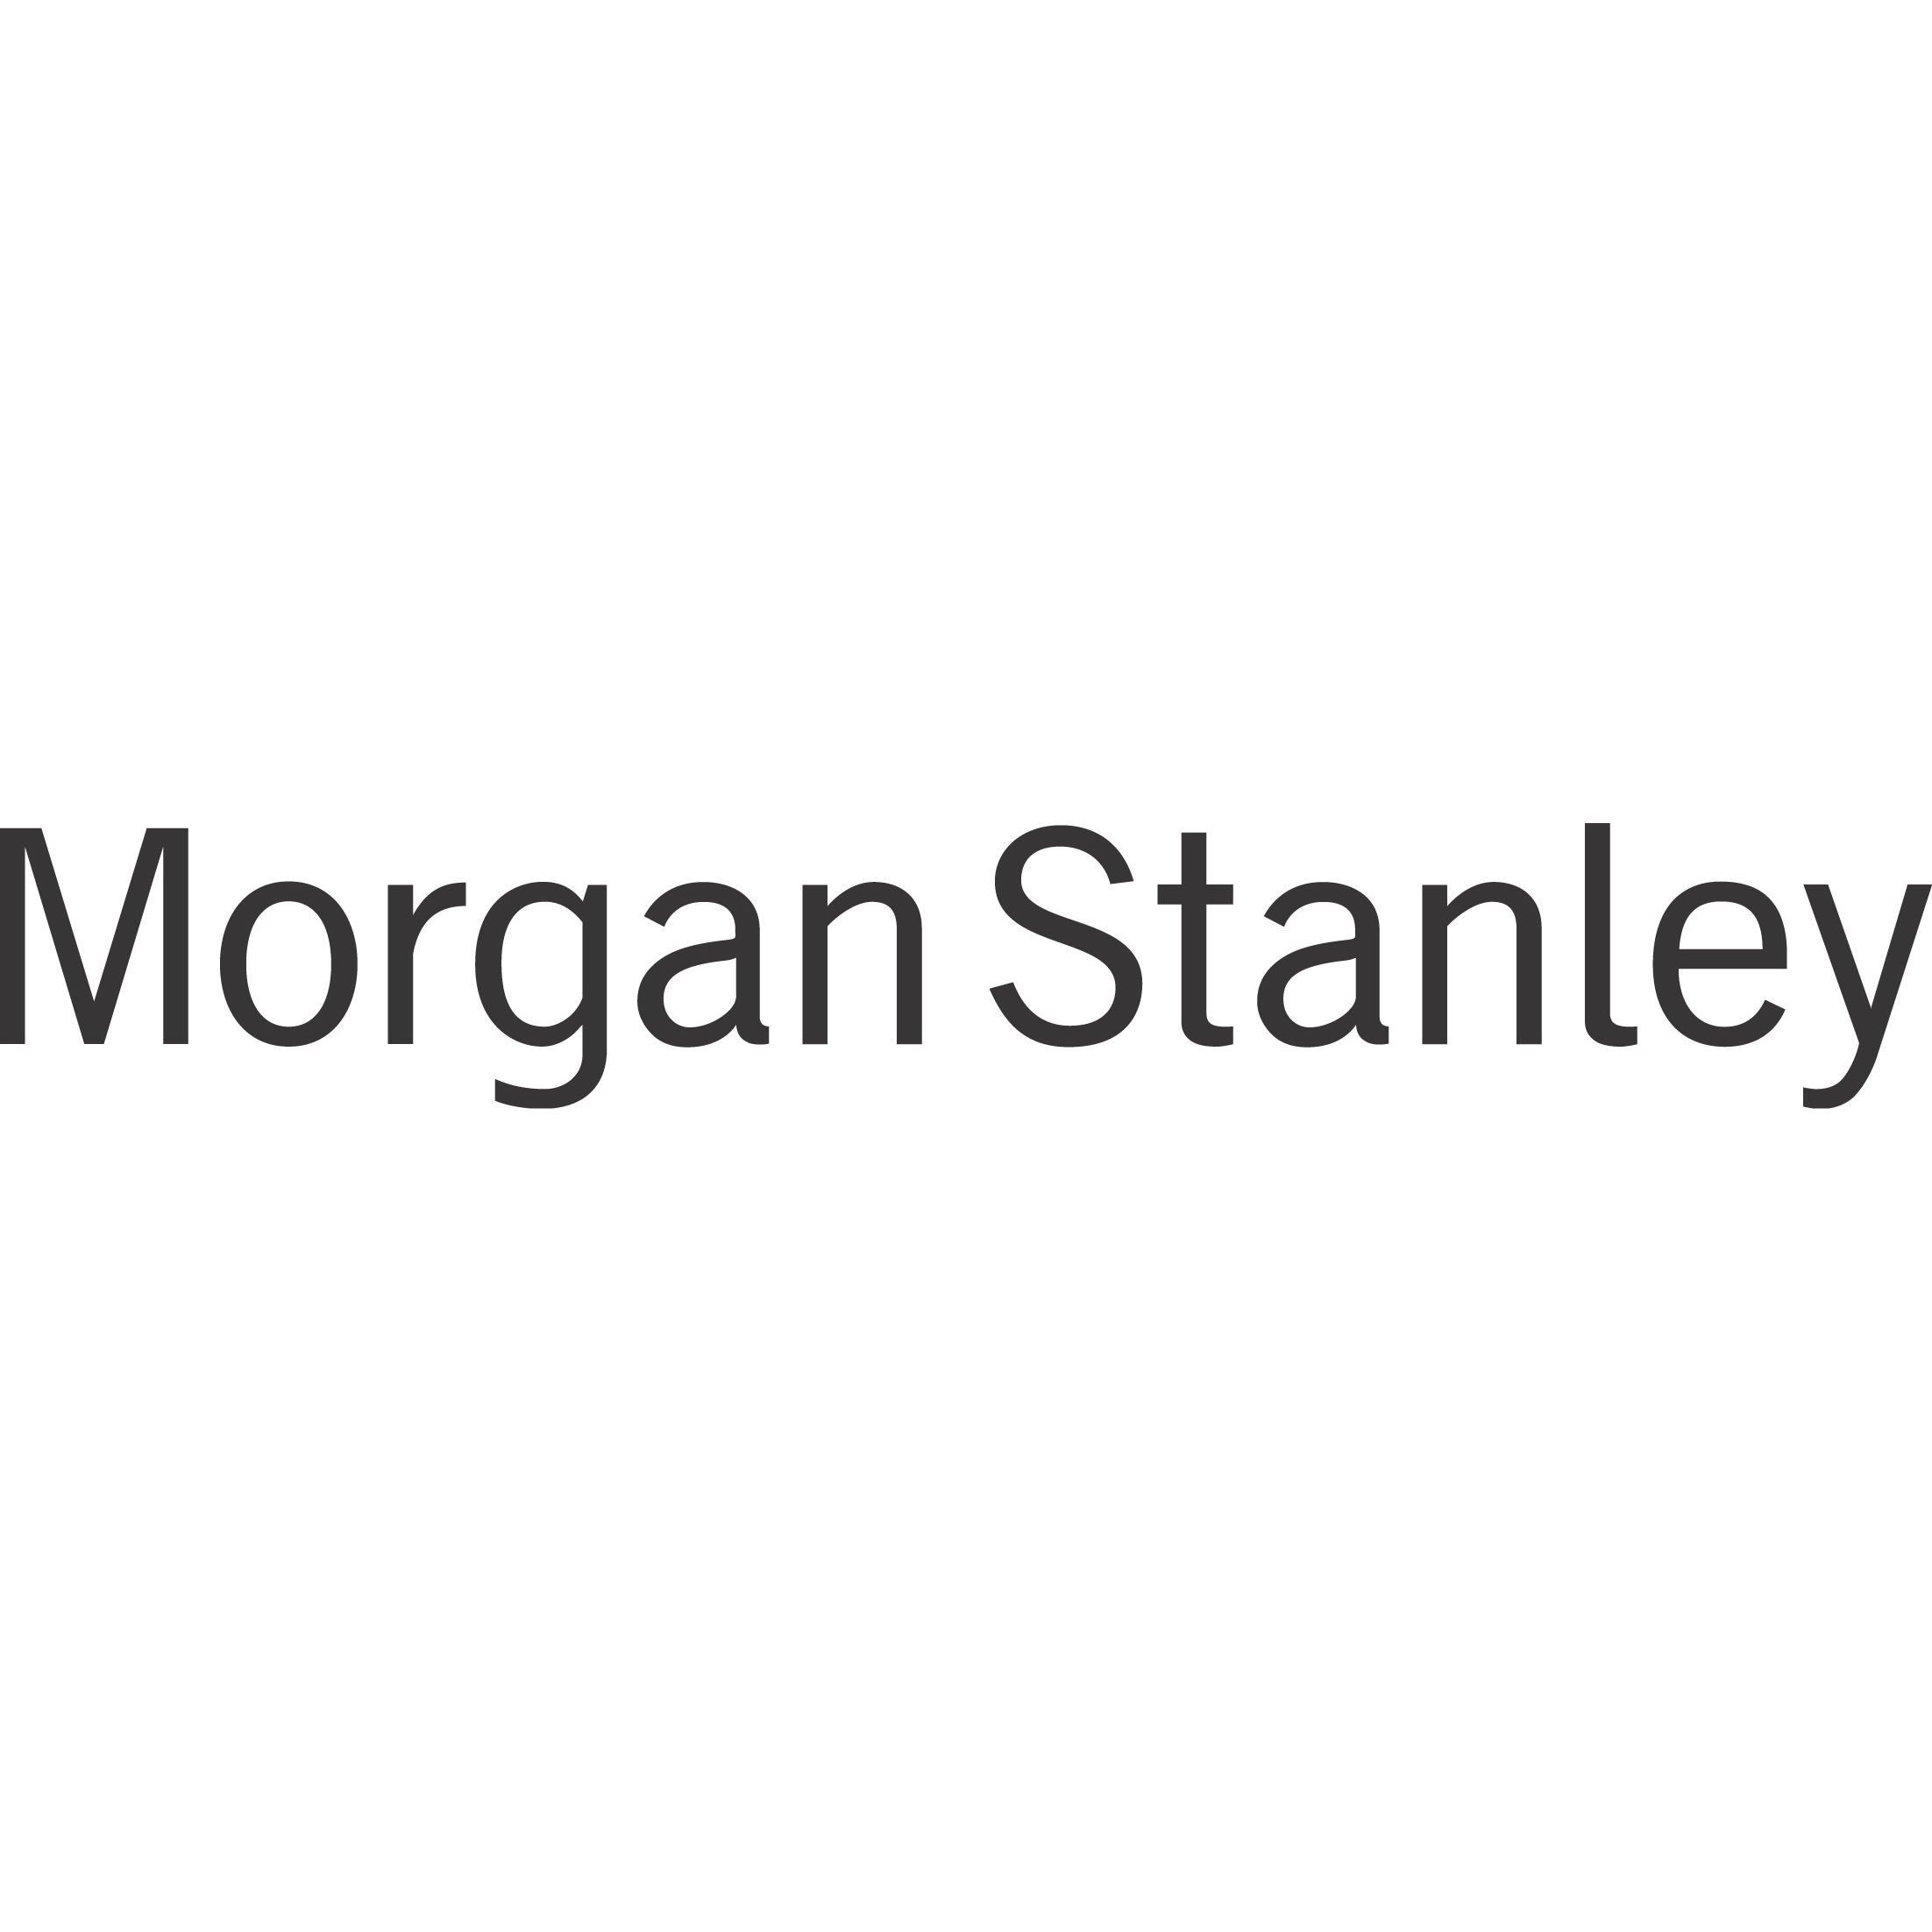 Brian D Lucewicz - Morgan Stanley | Financial Advisor in Carlsbad,California